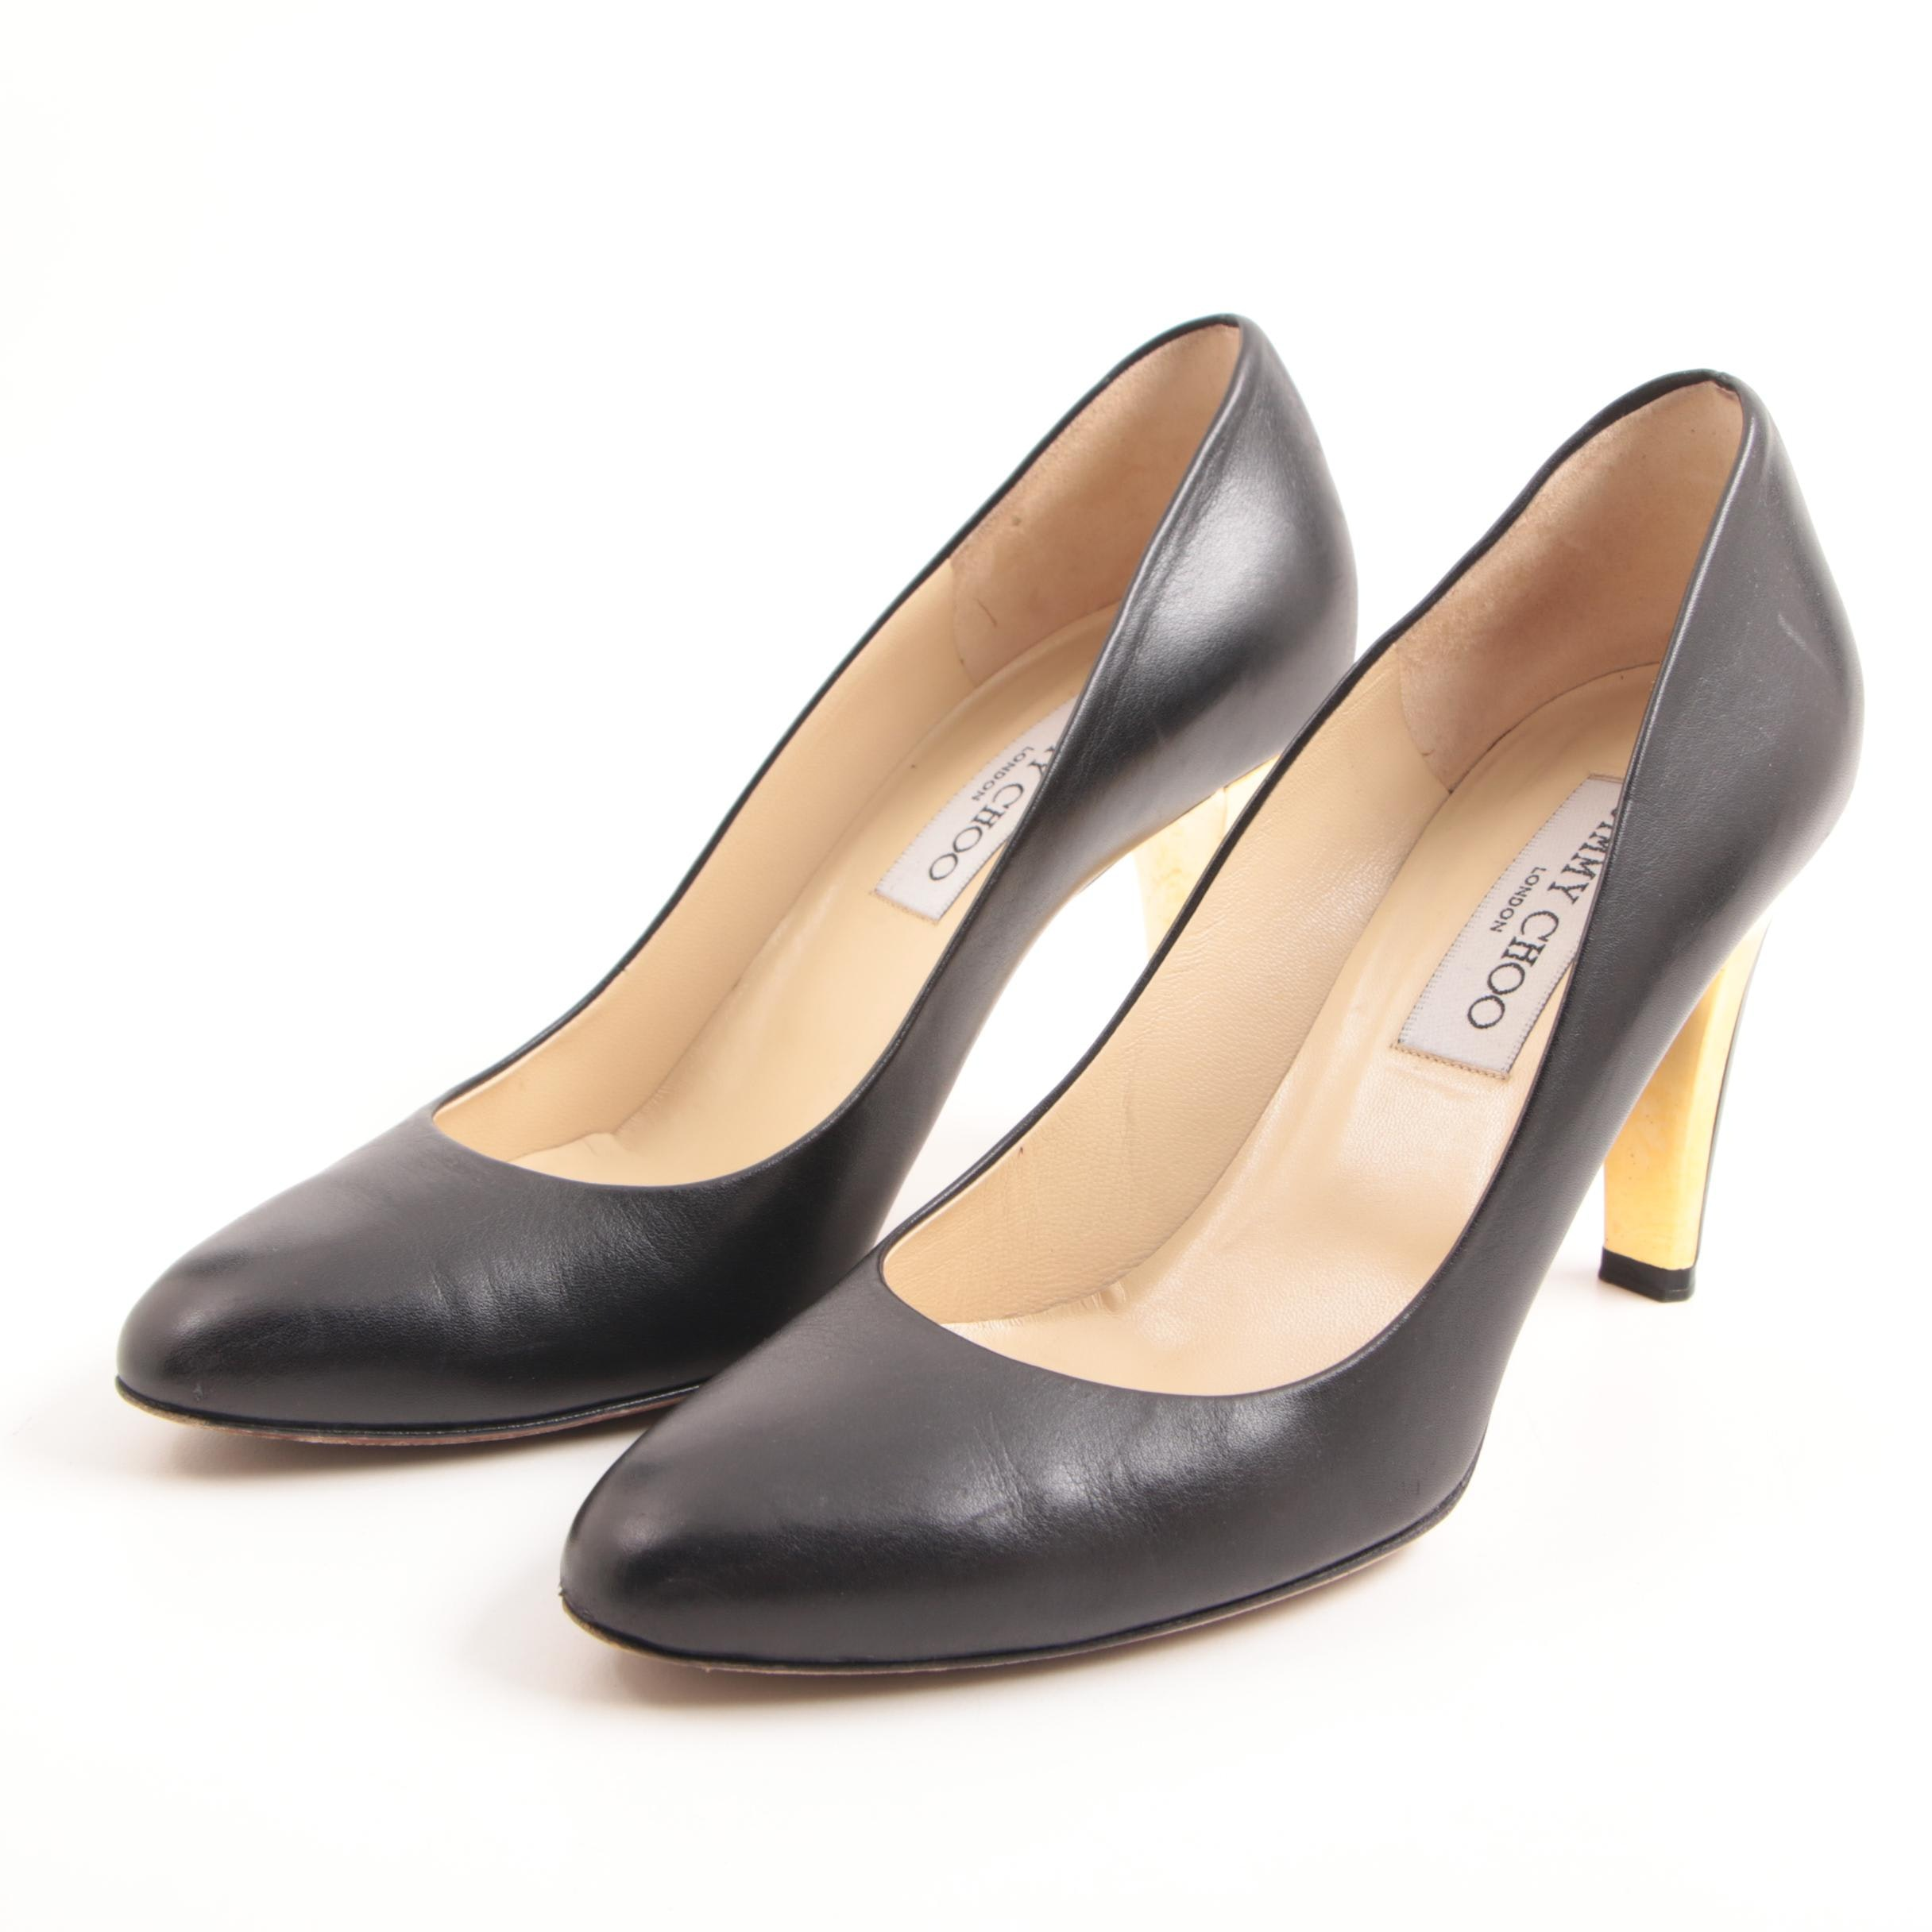 Jimmy Choo London Black Leather Pumps with Gold Tone Detailing